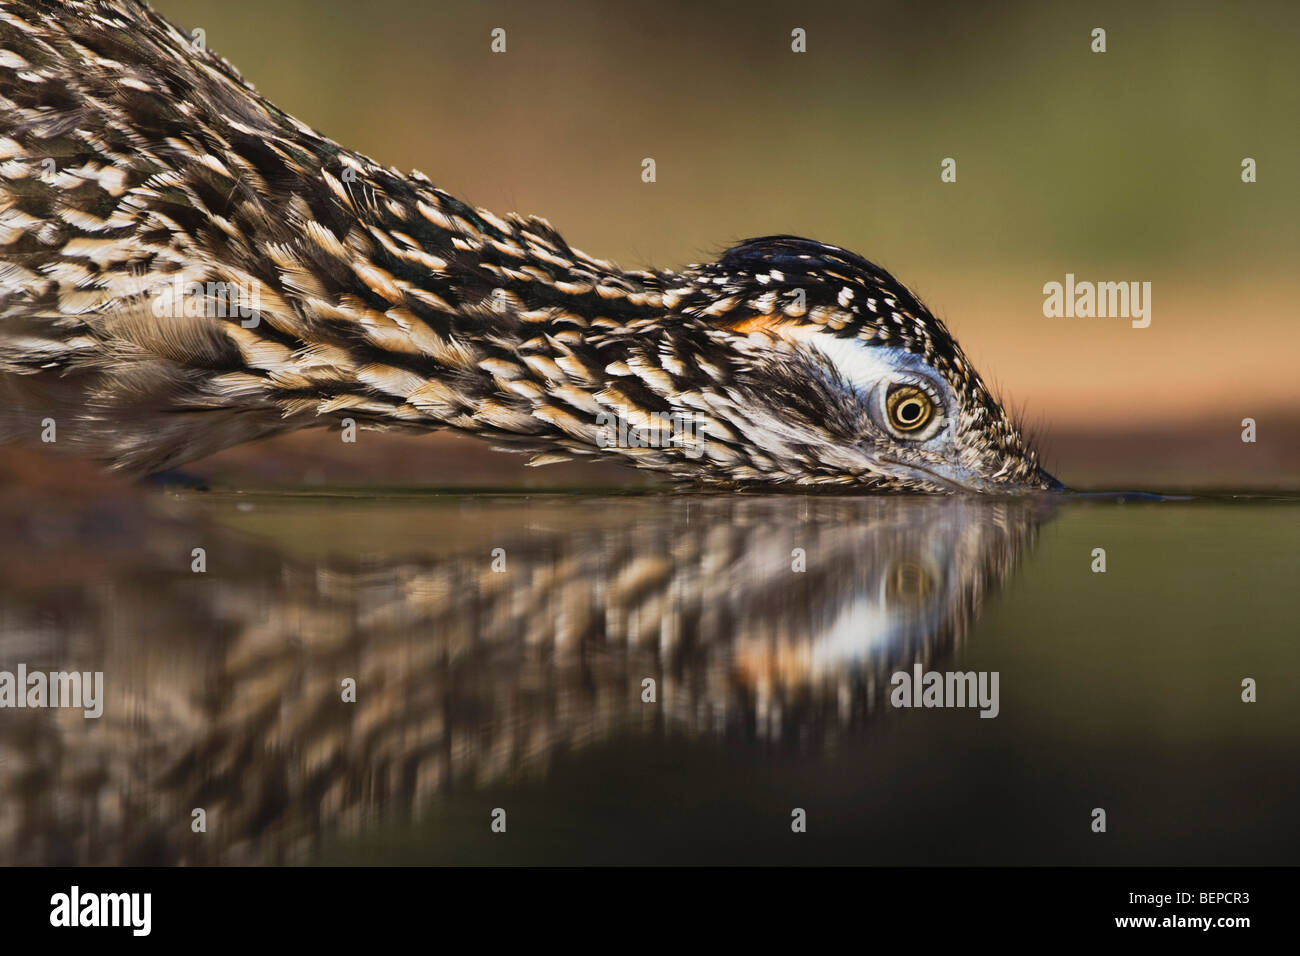 Greater Roadrunner (Geococcyx californianus),adult drinking, Starr County, Rio Grande Valley, Texas, USA - Stock Image